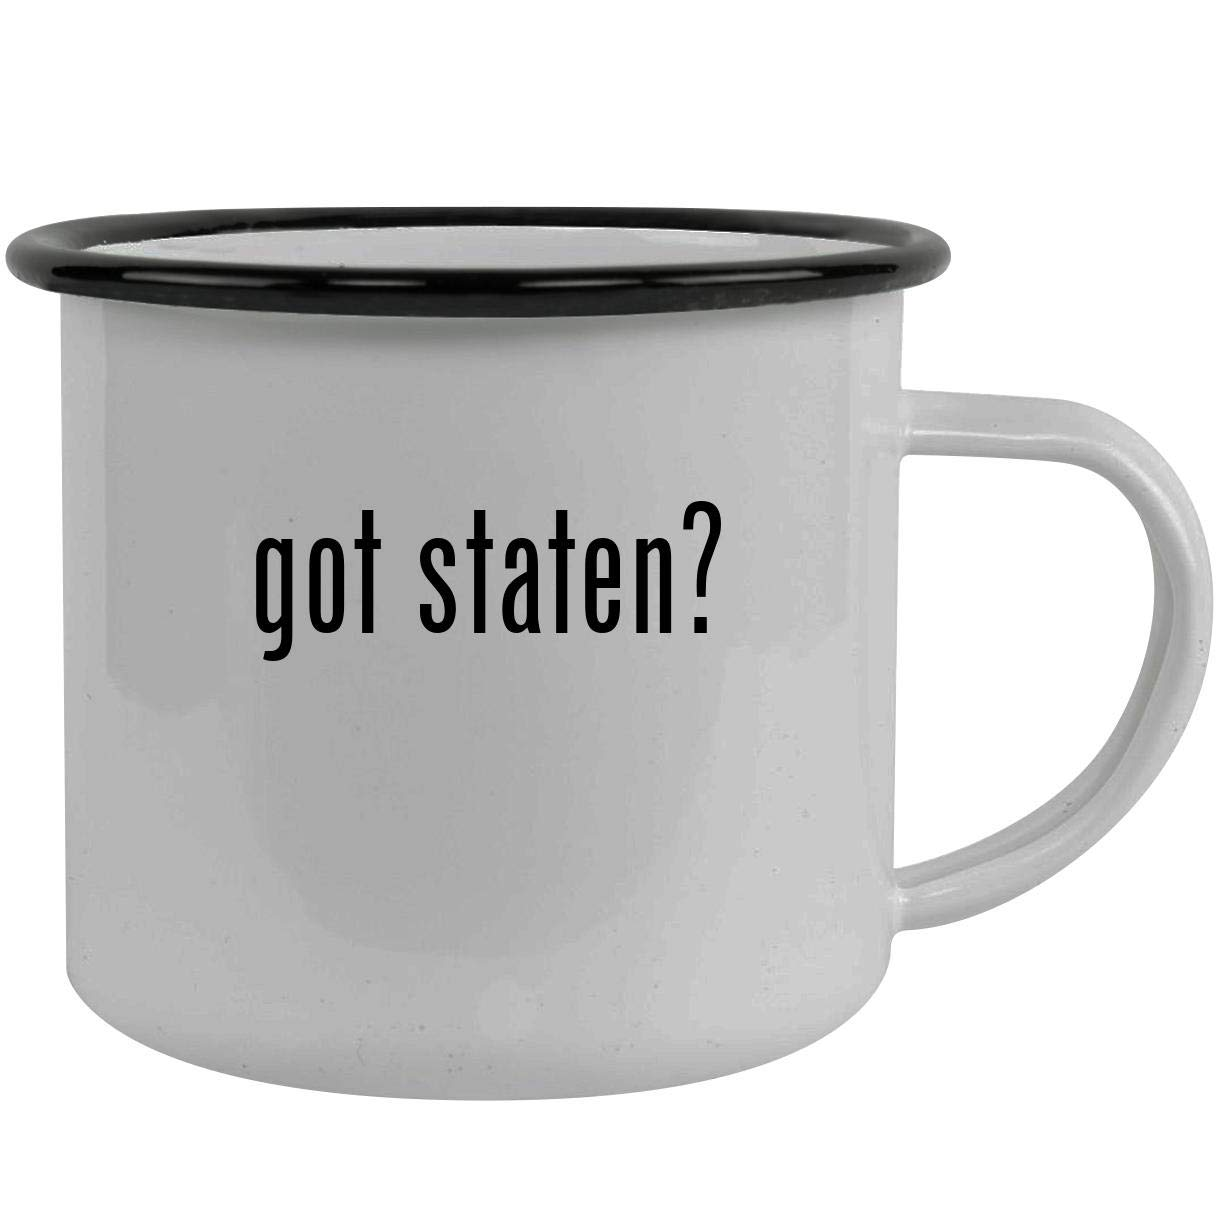 got staten? - Stainless Steel 12oz Camping Mug, Black